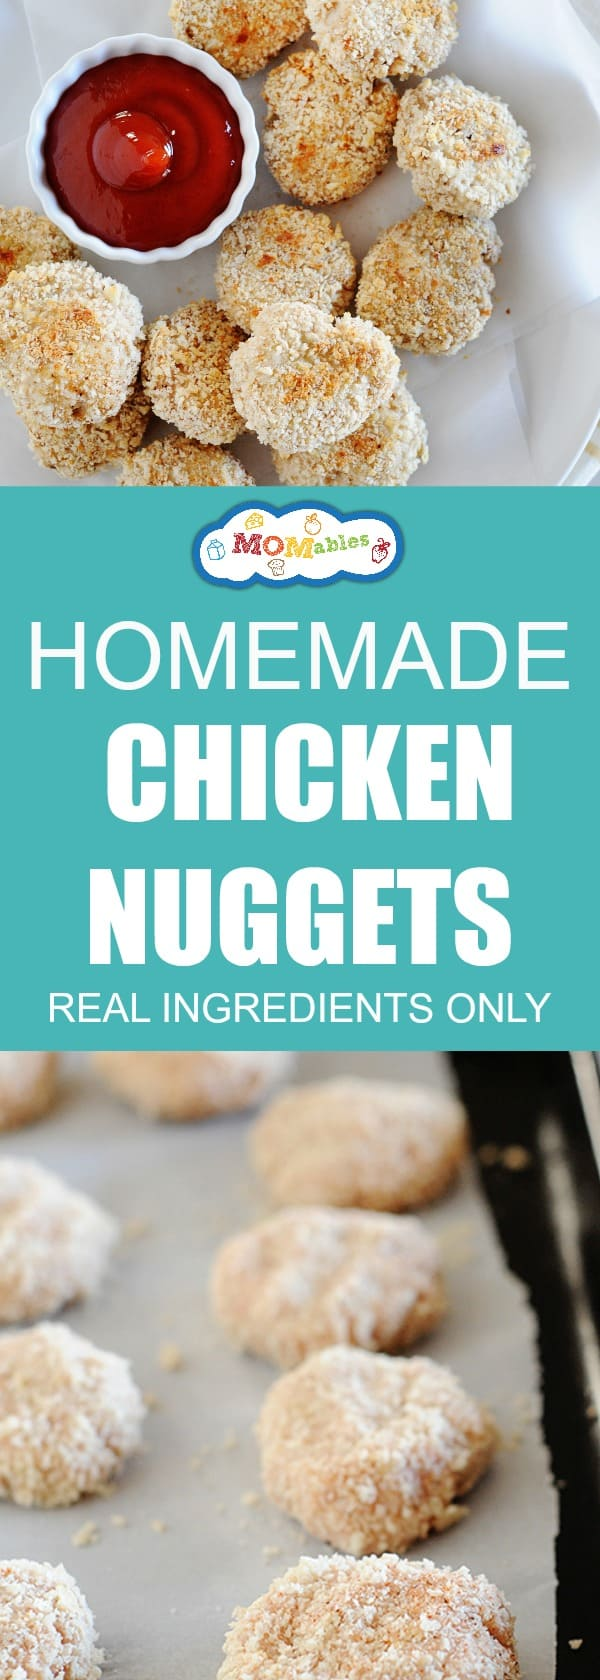 Chicken Nuggets get real a makeover. This recipe uses fresh ingredients to recreate the #1 food kids love! It's a copy-cat McDonald's Chicken nuggets recipe made at home.